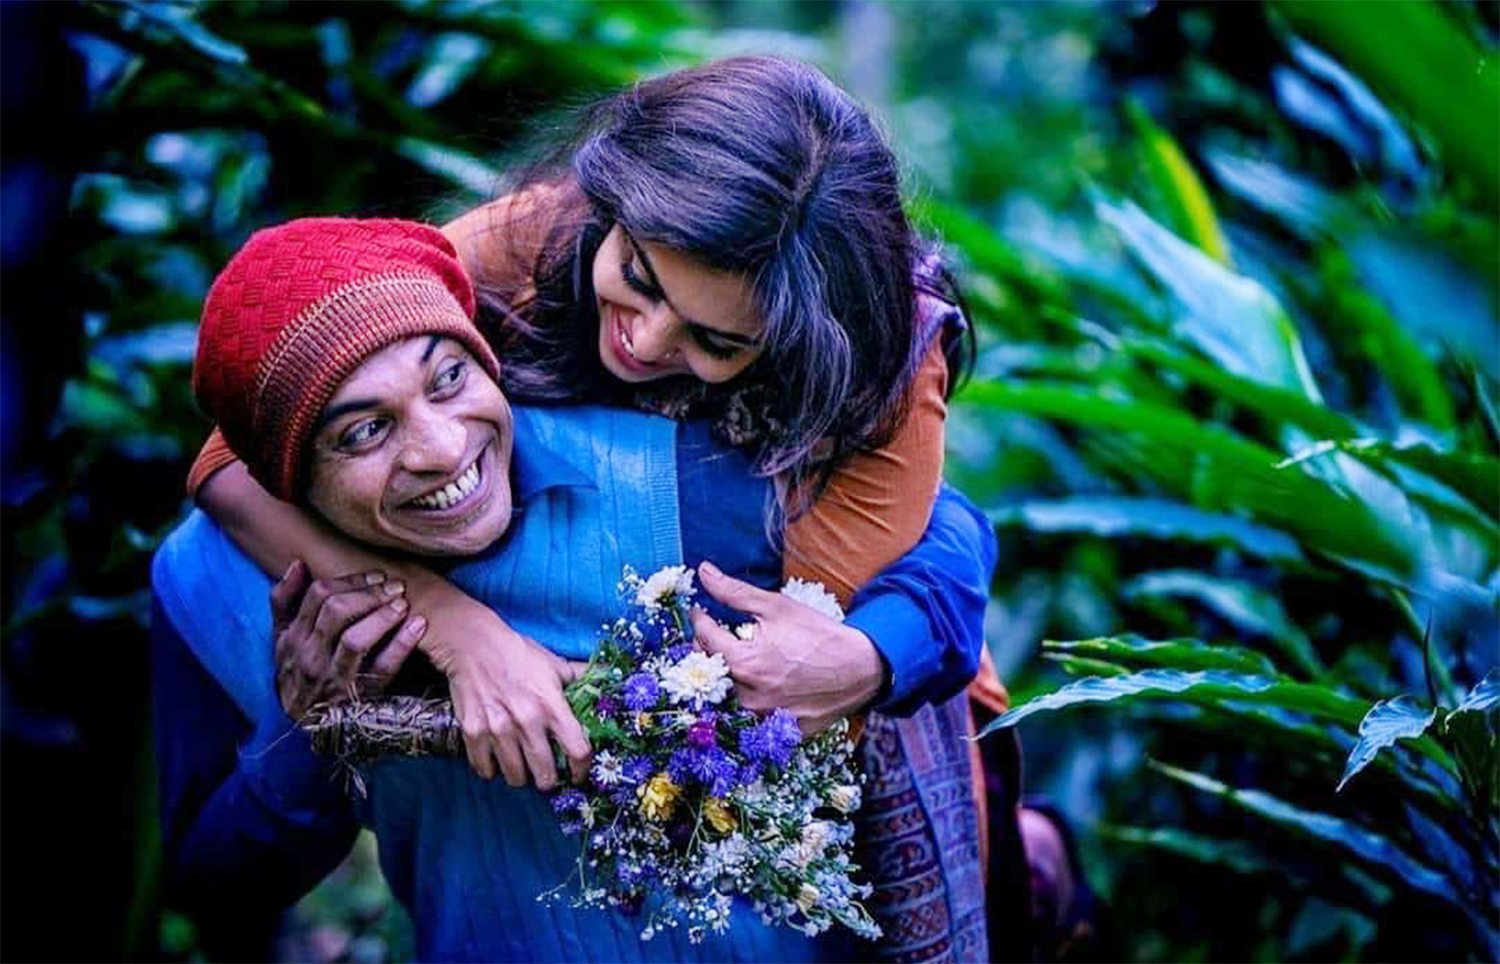 Ambili Review,ambili film review,ambili movie review,soubin shahir ambili review,ambili film hit or flop,ambili movie ratings,ambili movie kerala box office report,ambili film poster,ambili film stills,soubin shahir new film,john paul george